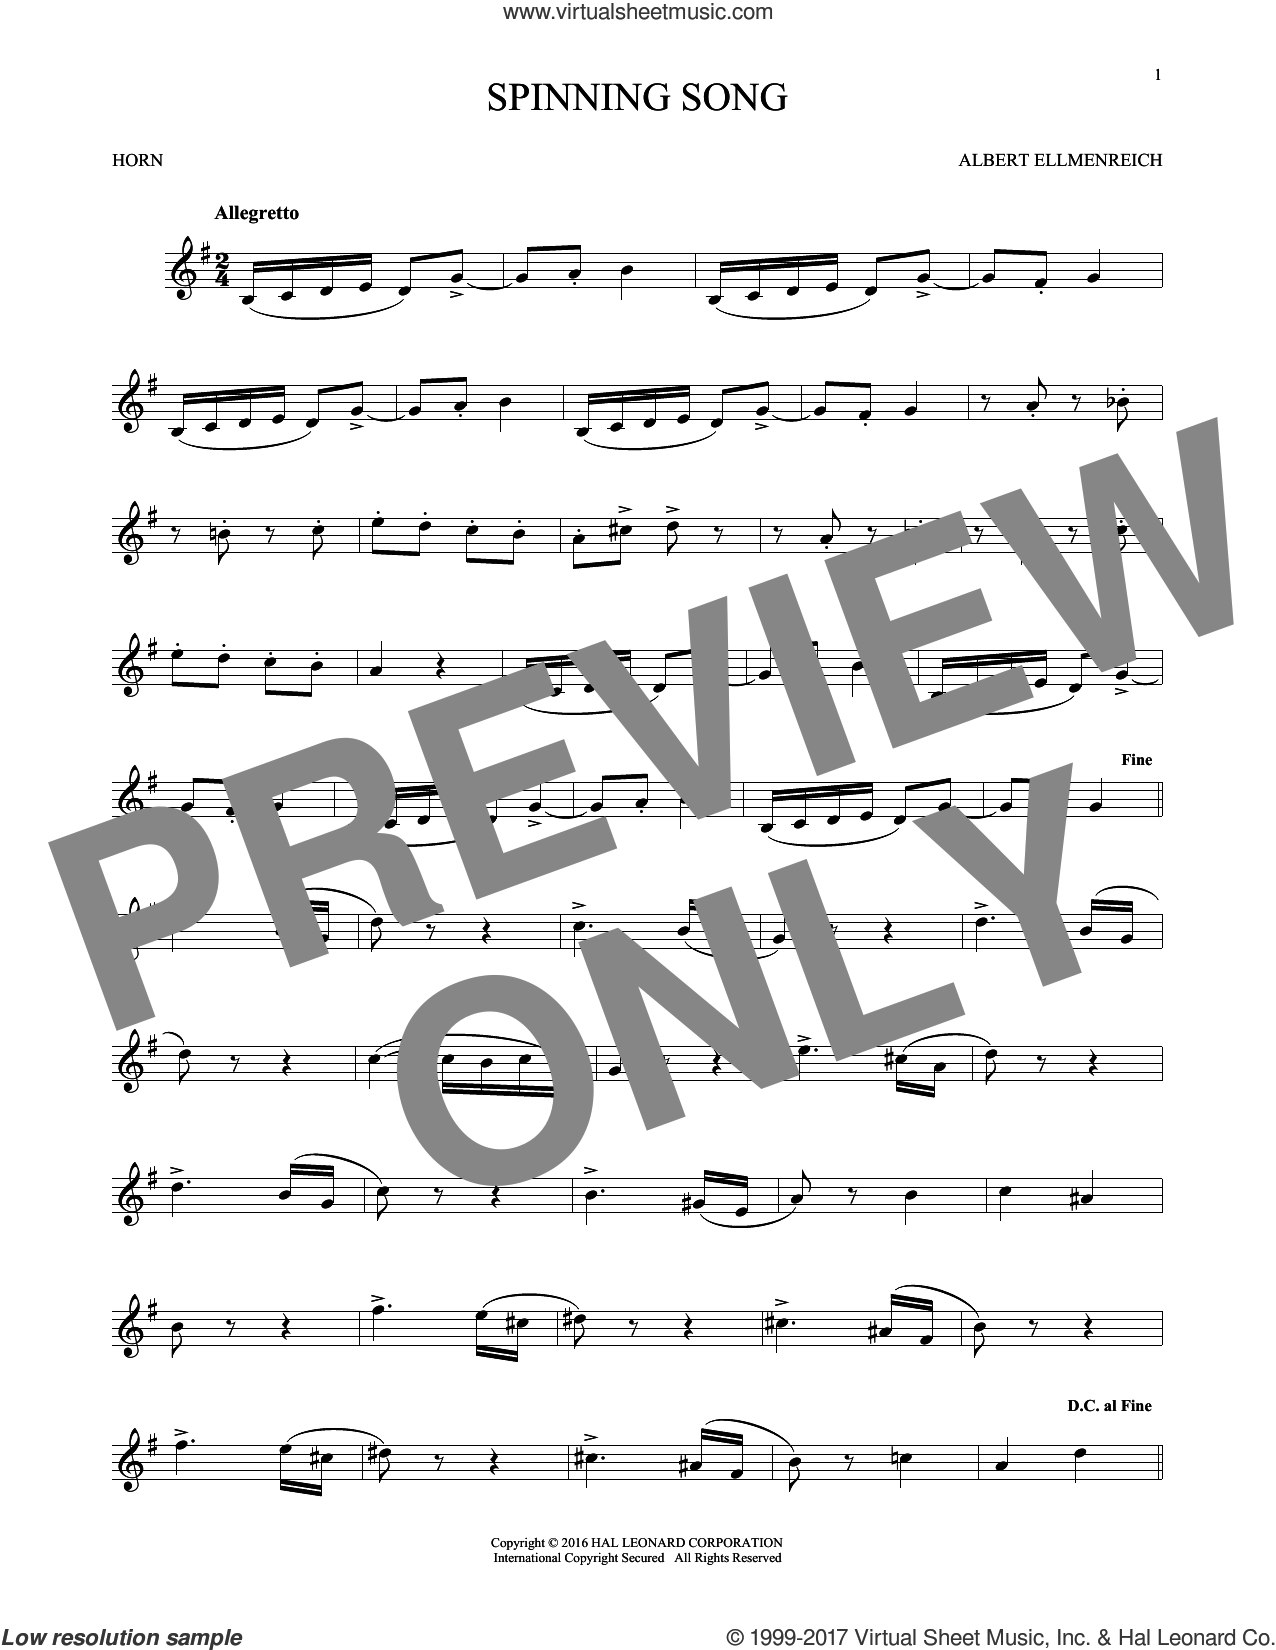 Spinning Song sheet music for horn solo by Albert Ellmenreich, classical score, intermediate skill level